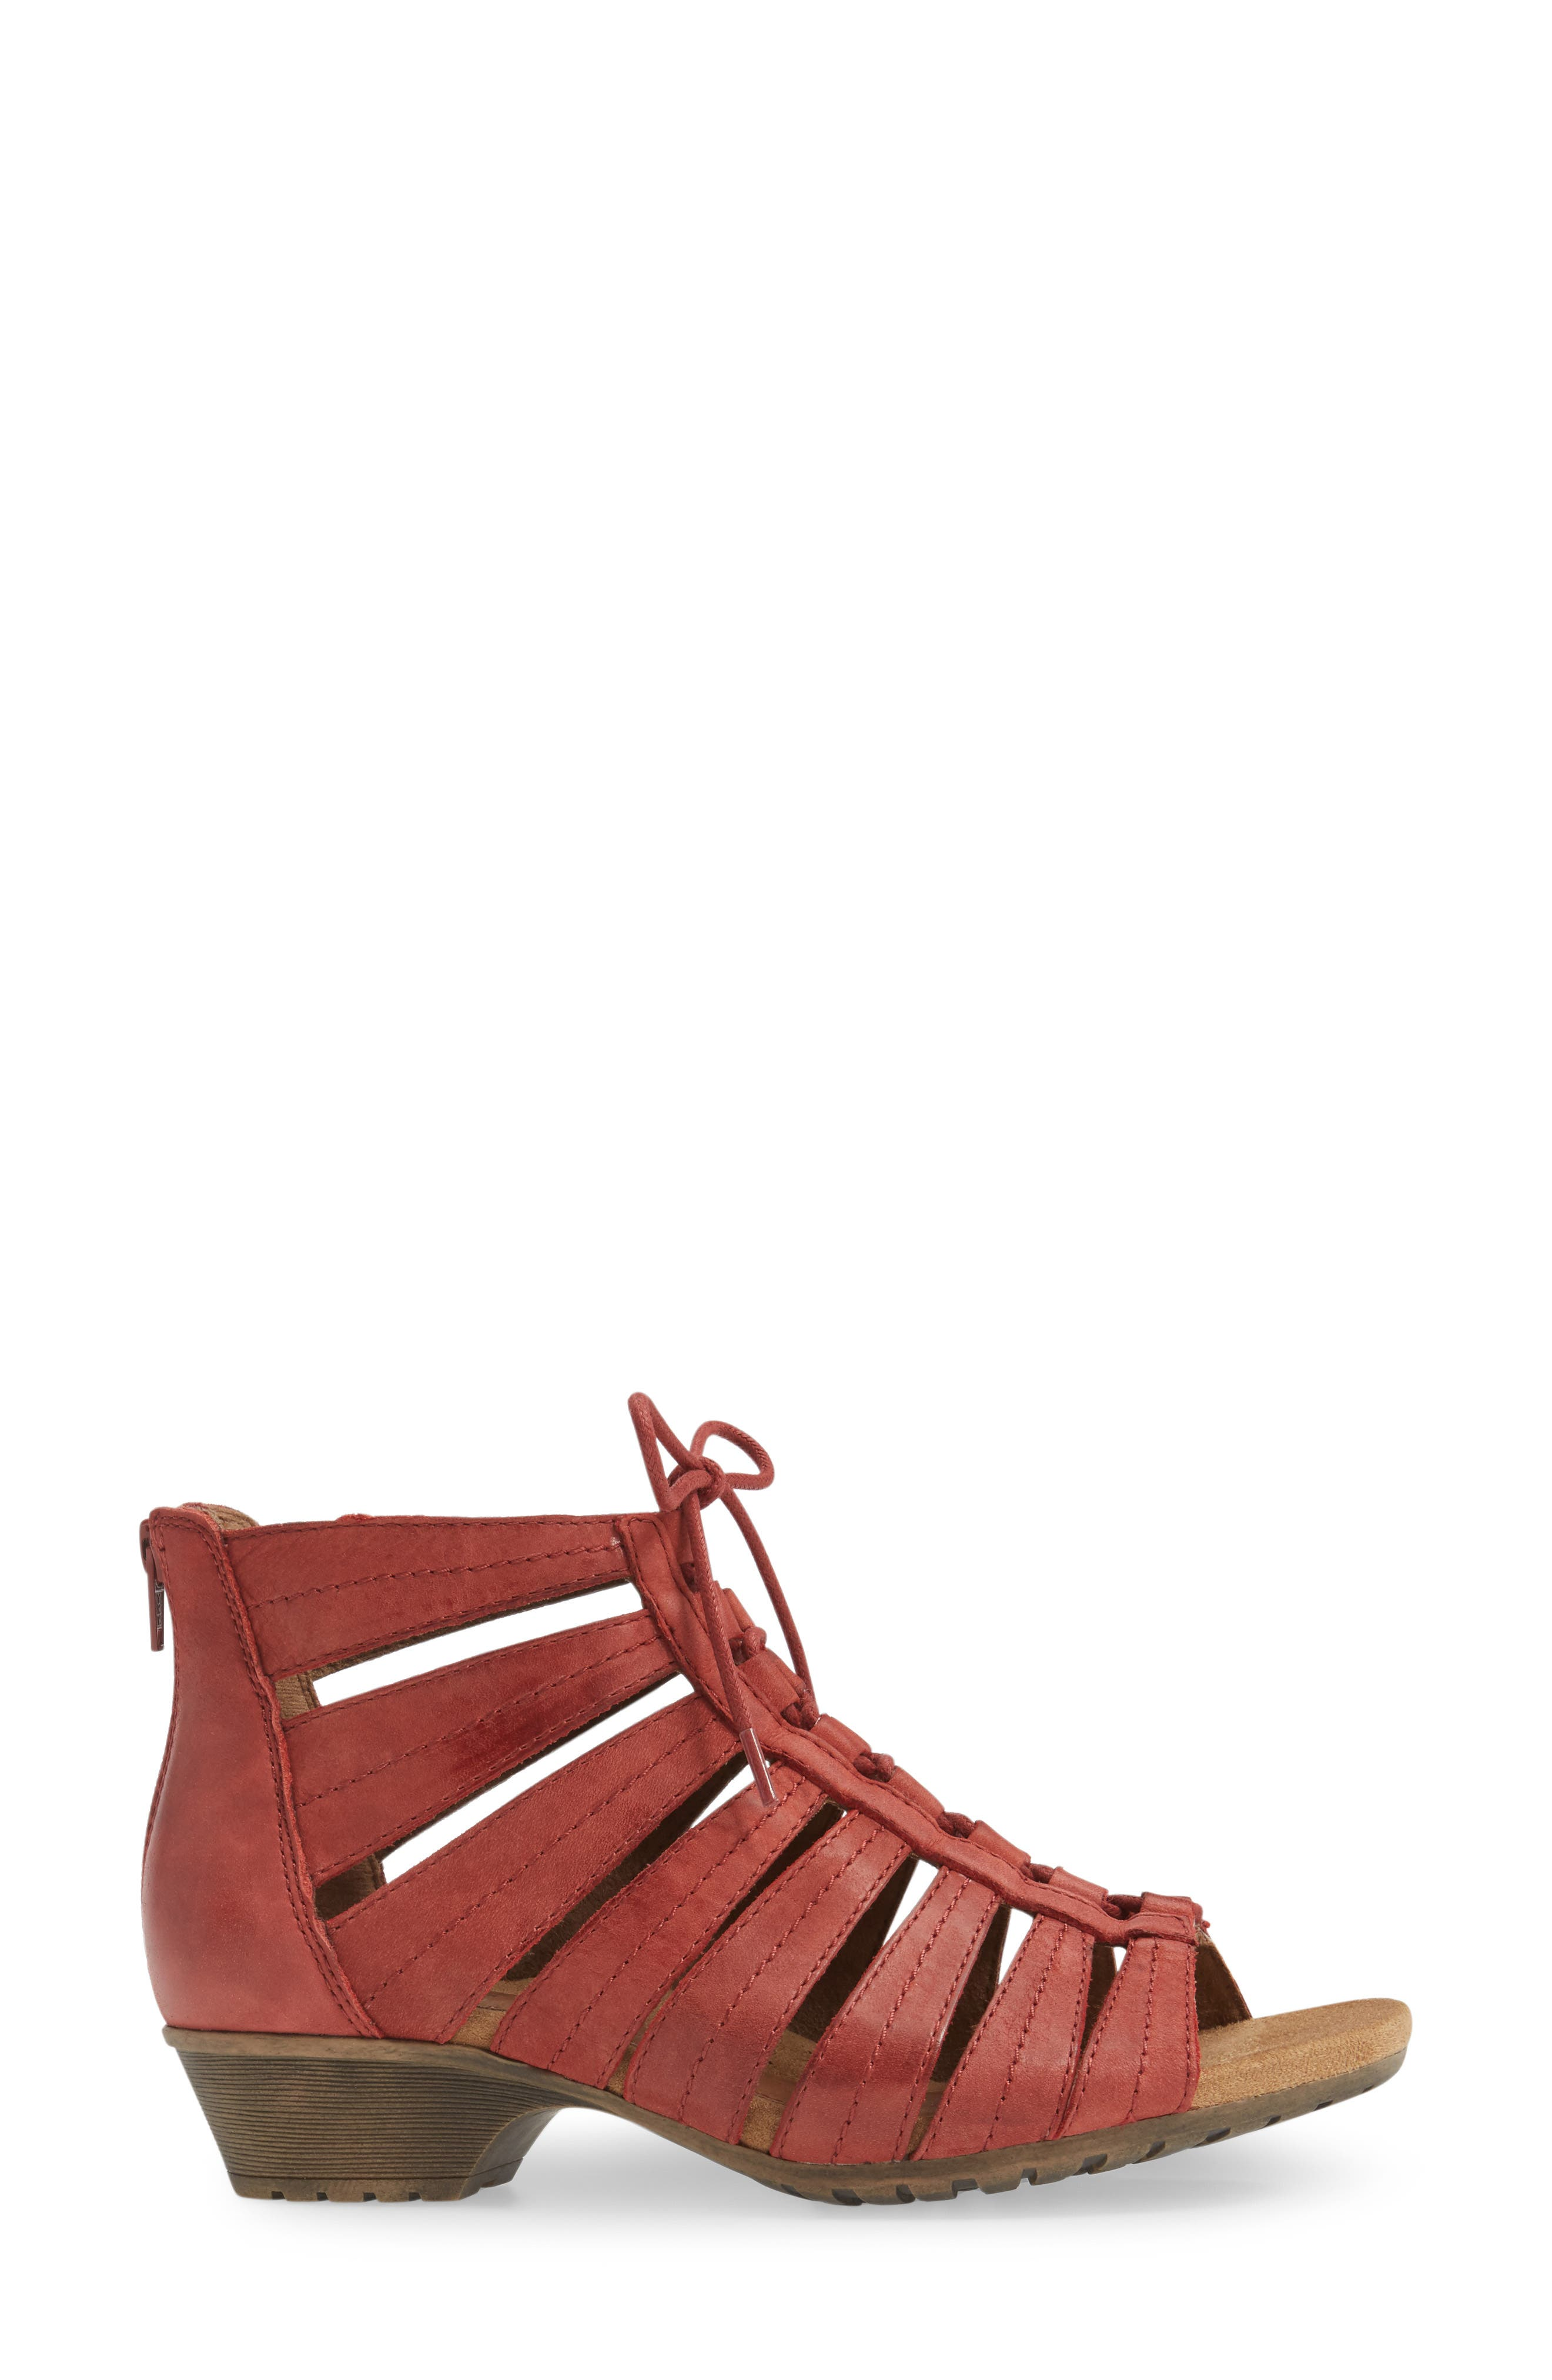 'Gabby' Lace-Up Sandal,                             Alternate thumbnail 24, color,